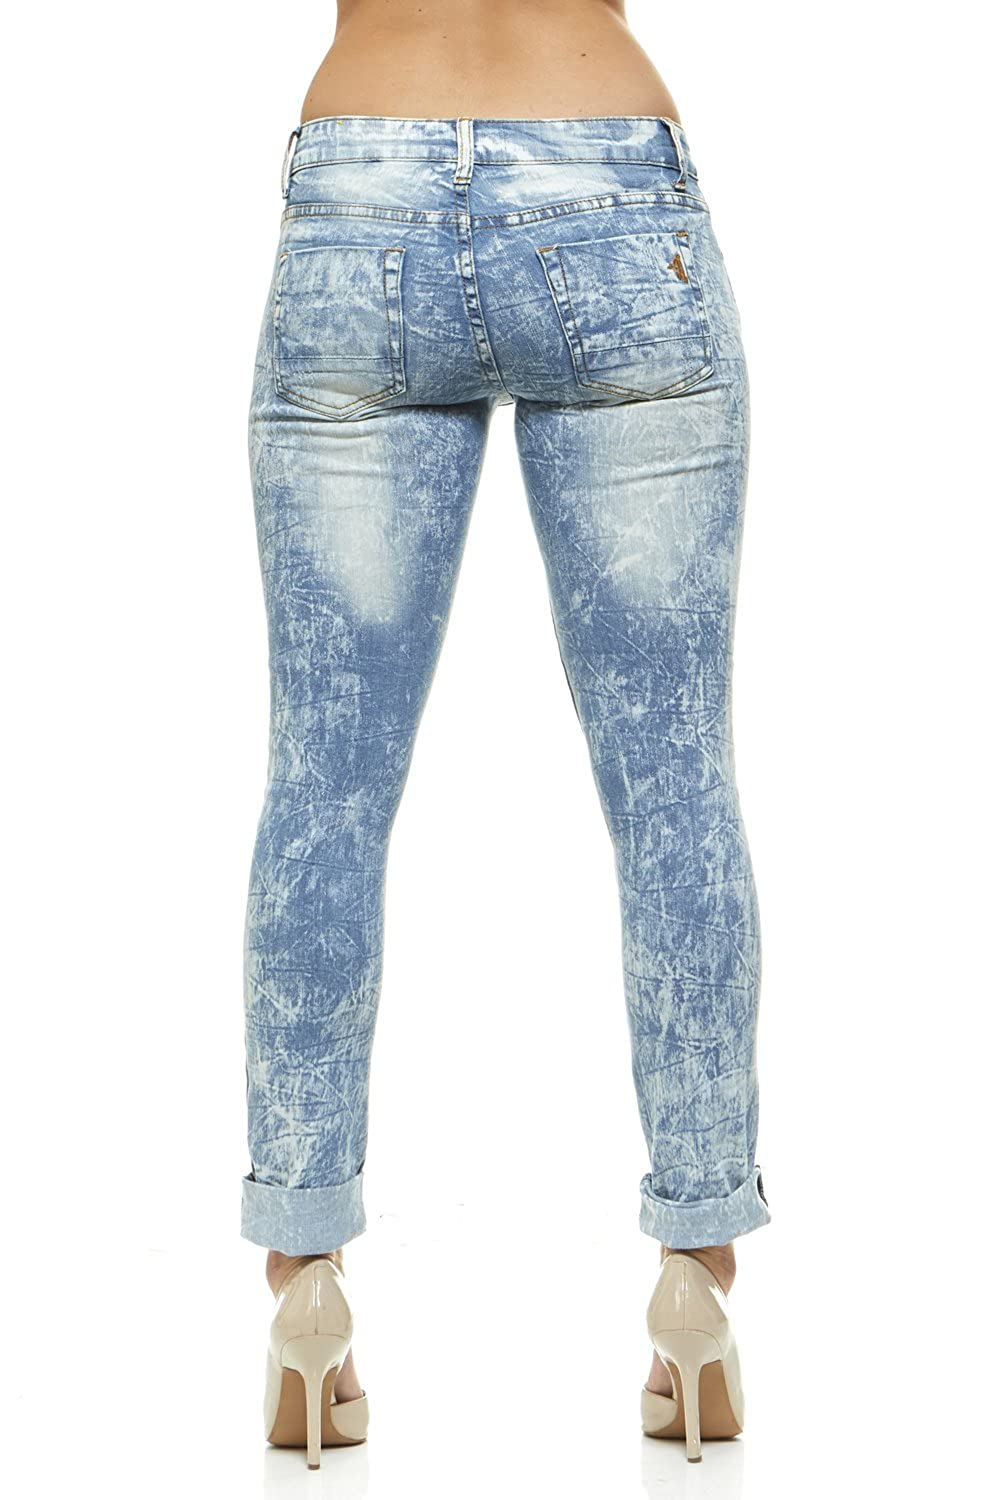 83f5fb79b20 Ripped Acid Bleached Jeans for Women Skinny Leg Junior or Plus Sizes at  Amazon Women's Jeans store